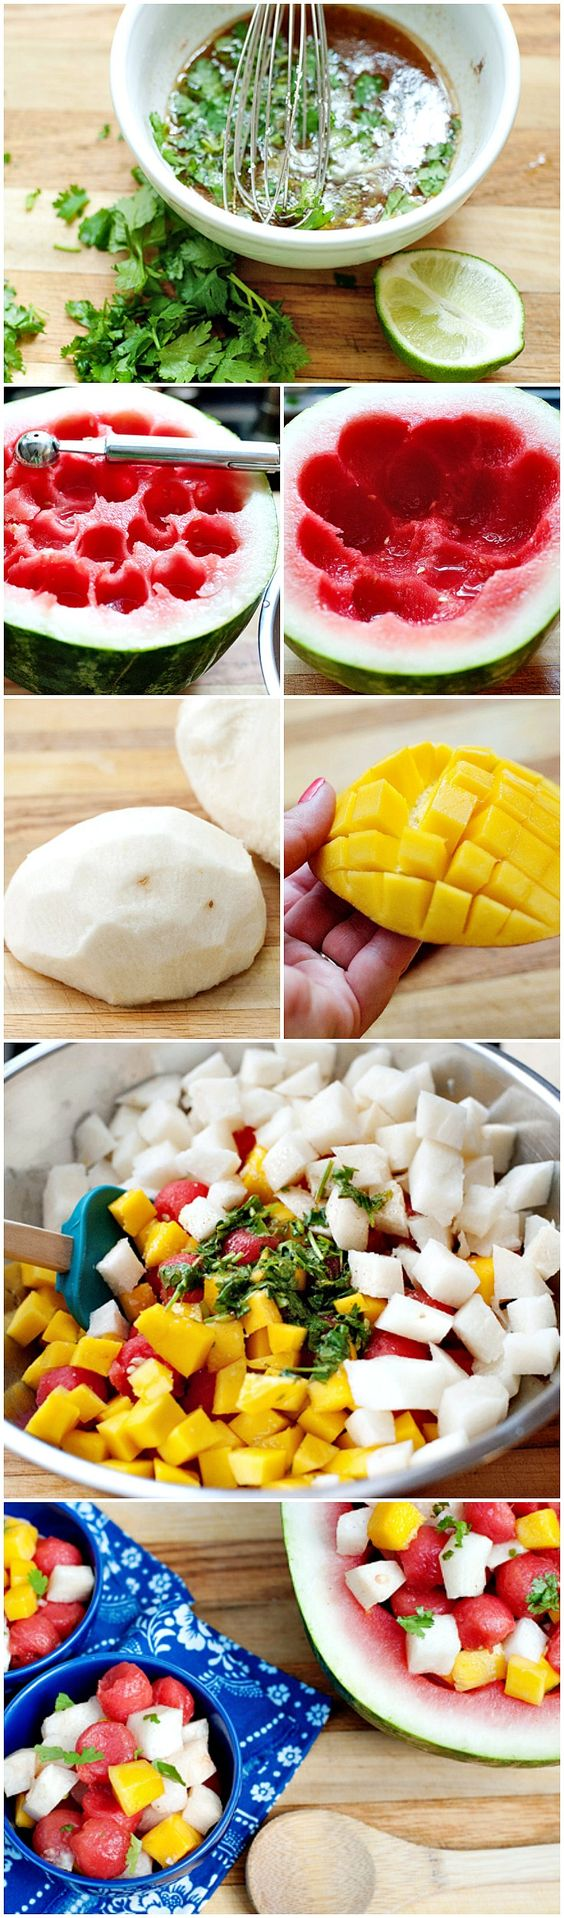 Strawberry Mango Jicama Salad Recipe — Dishmaps